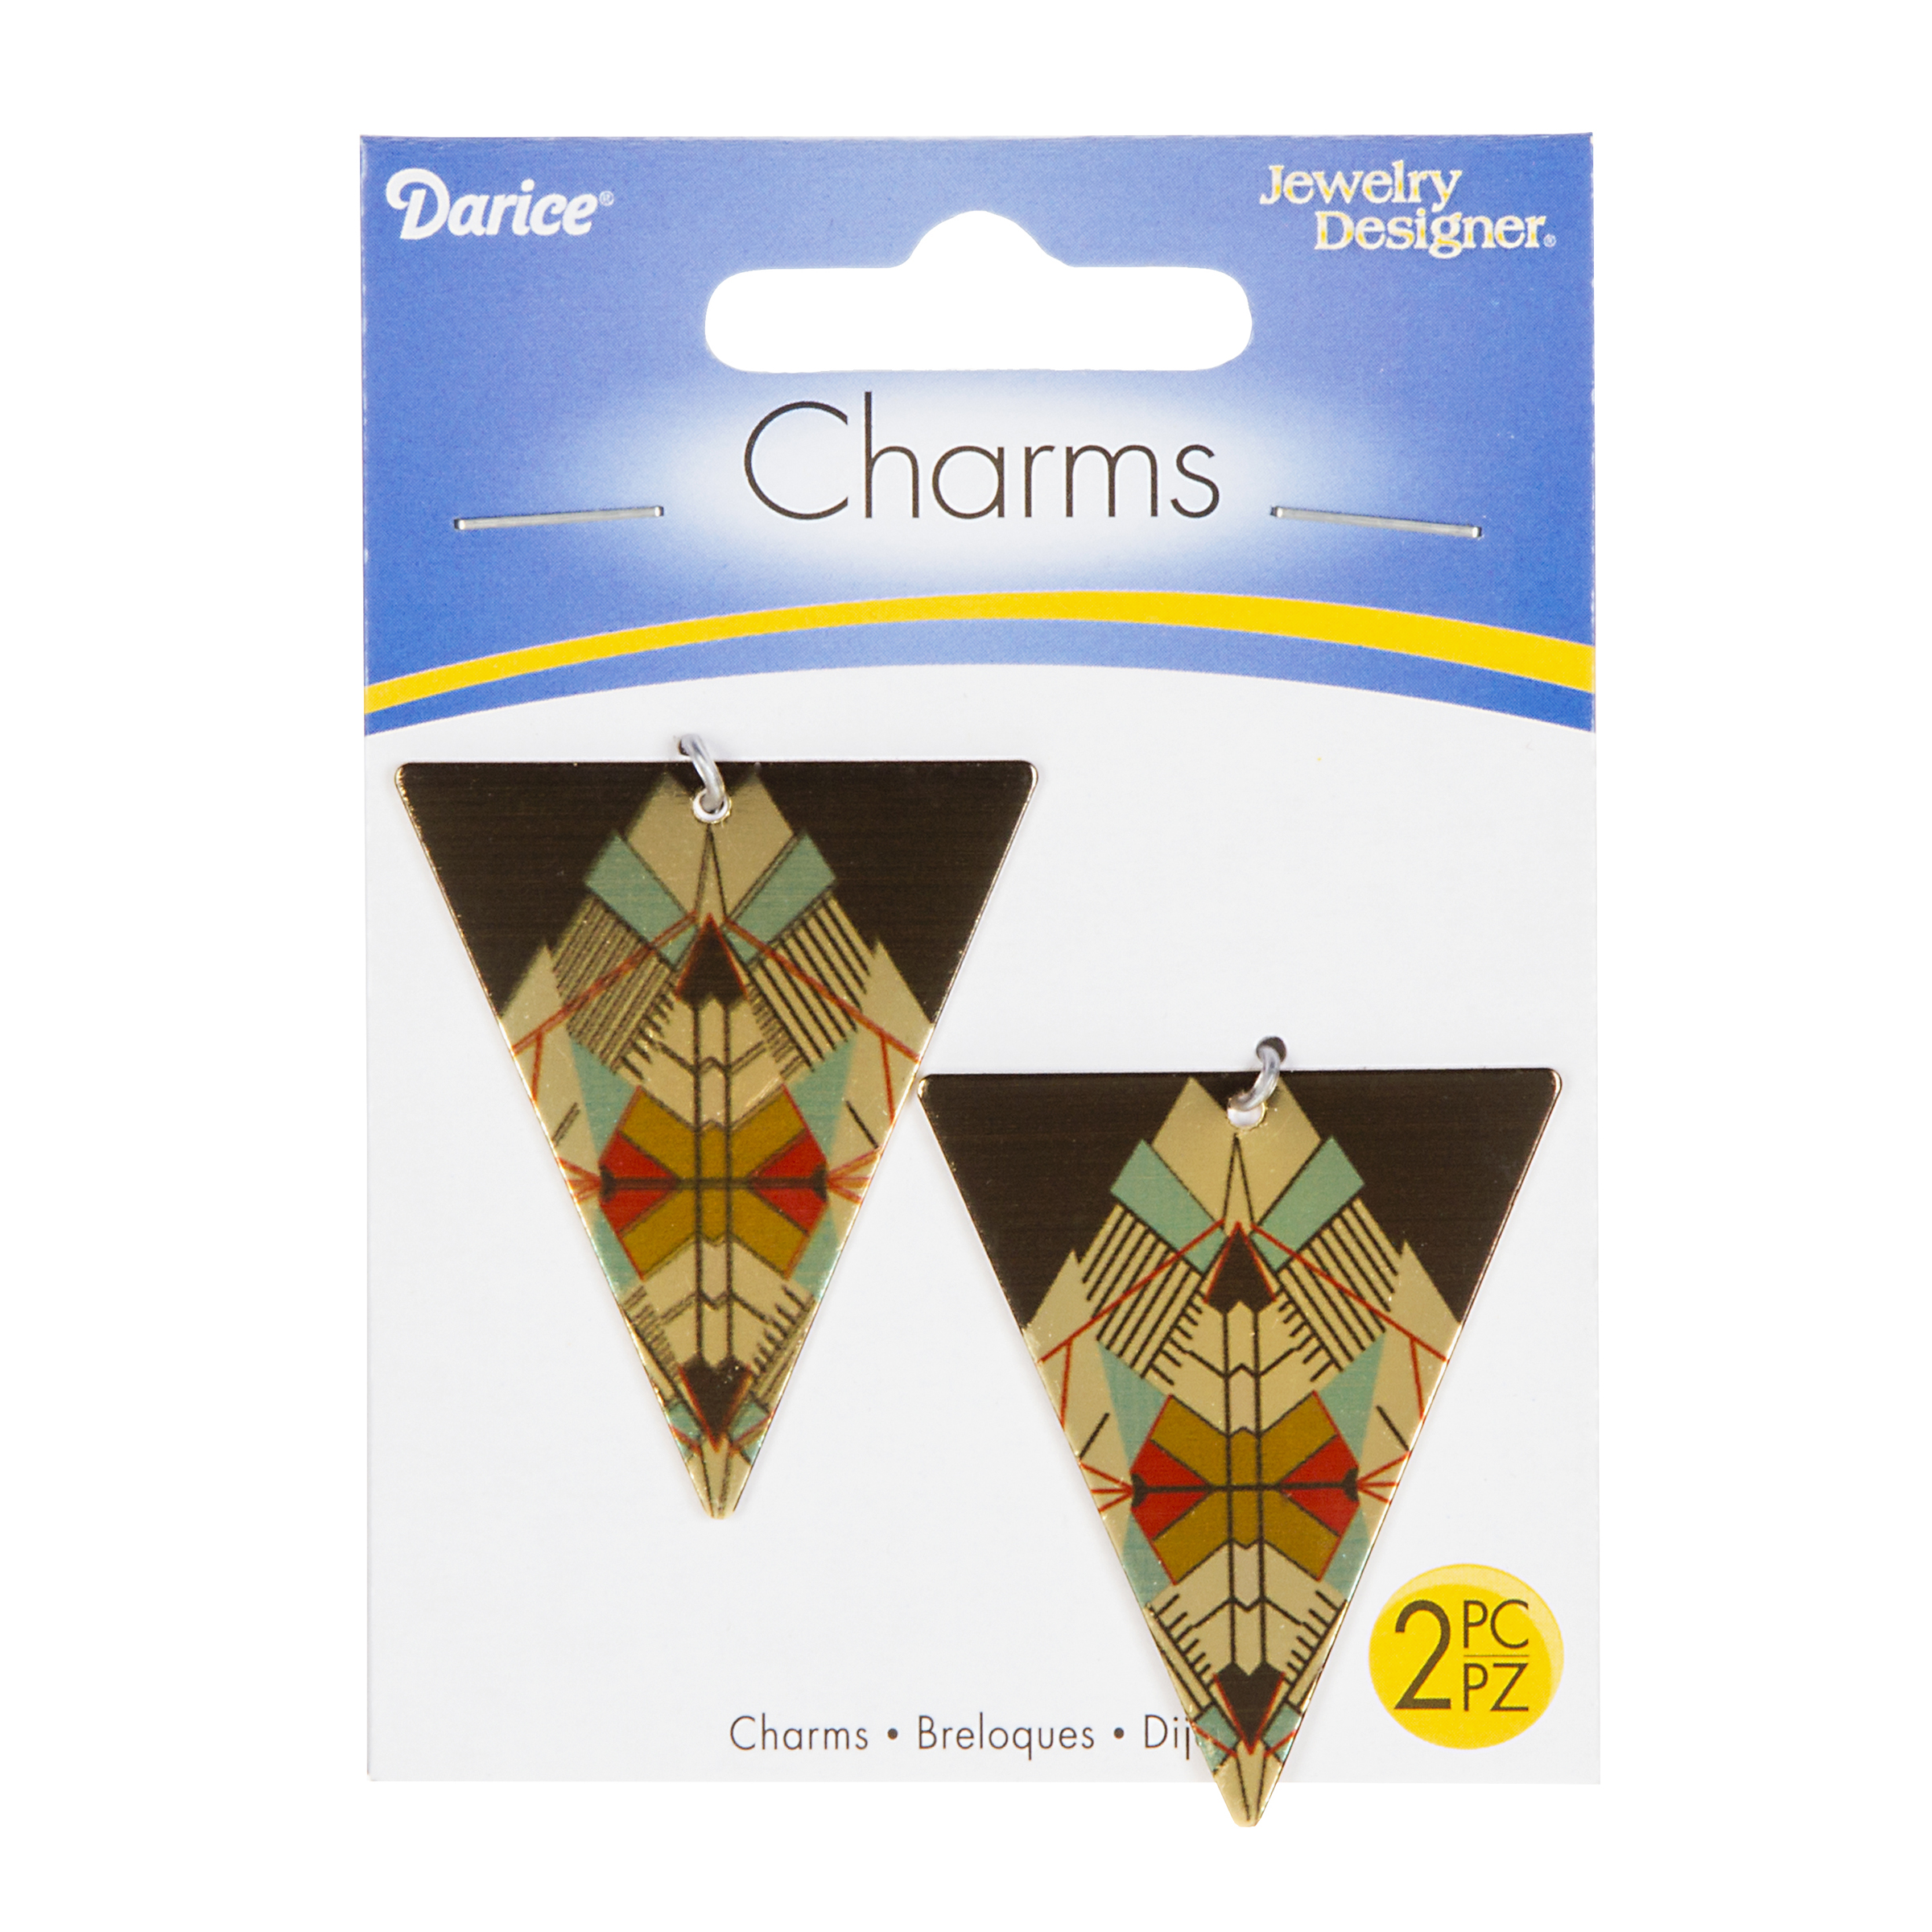 Metallic Patterned Triangle Charms, Black/Gold/Red/Green, 2pcs./pkg